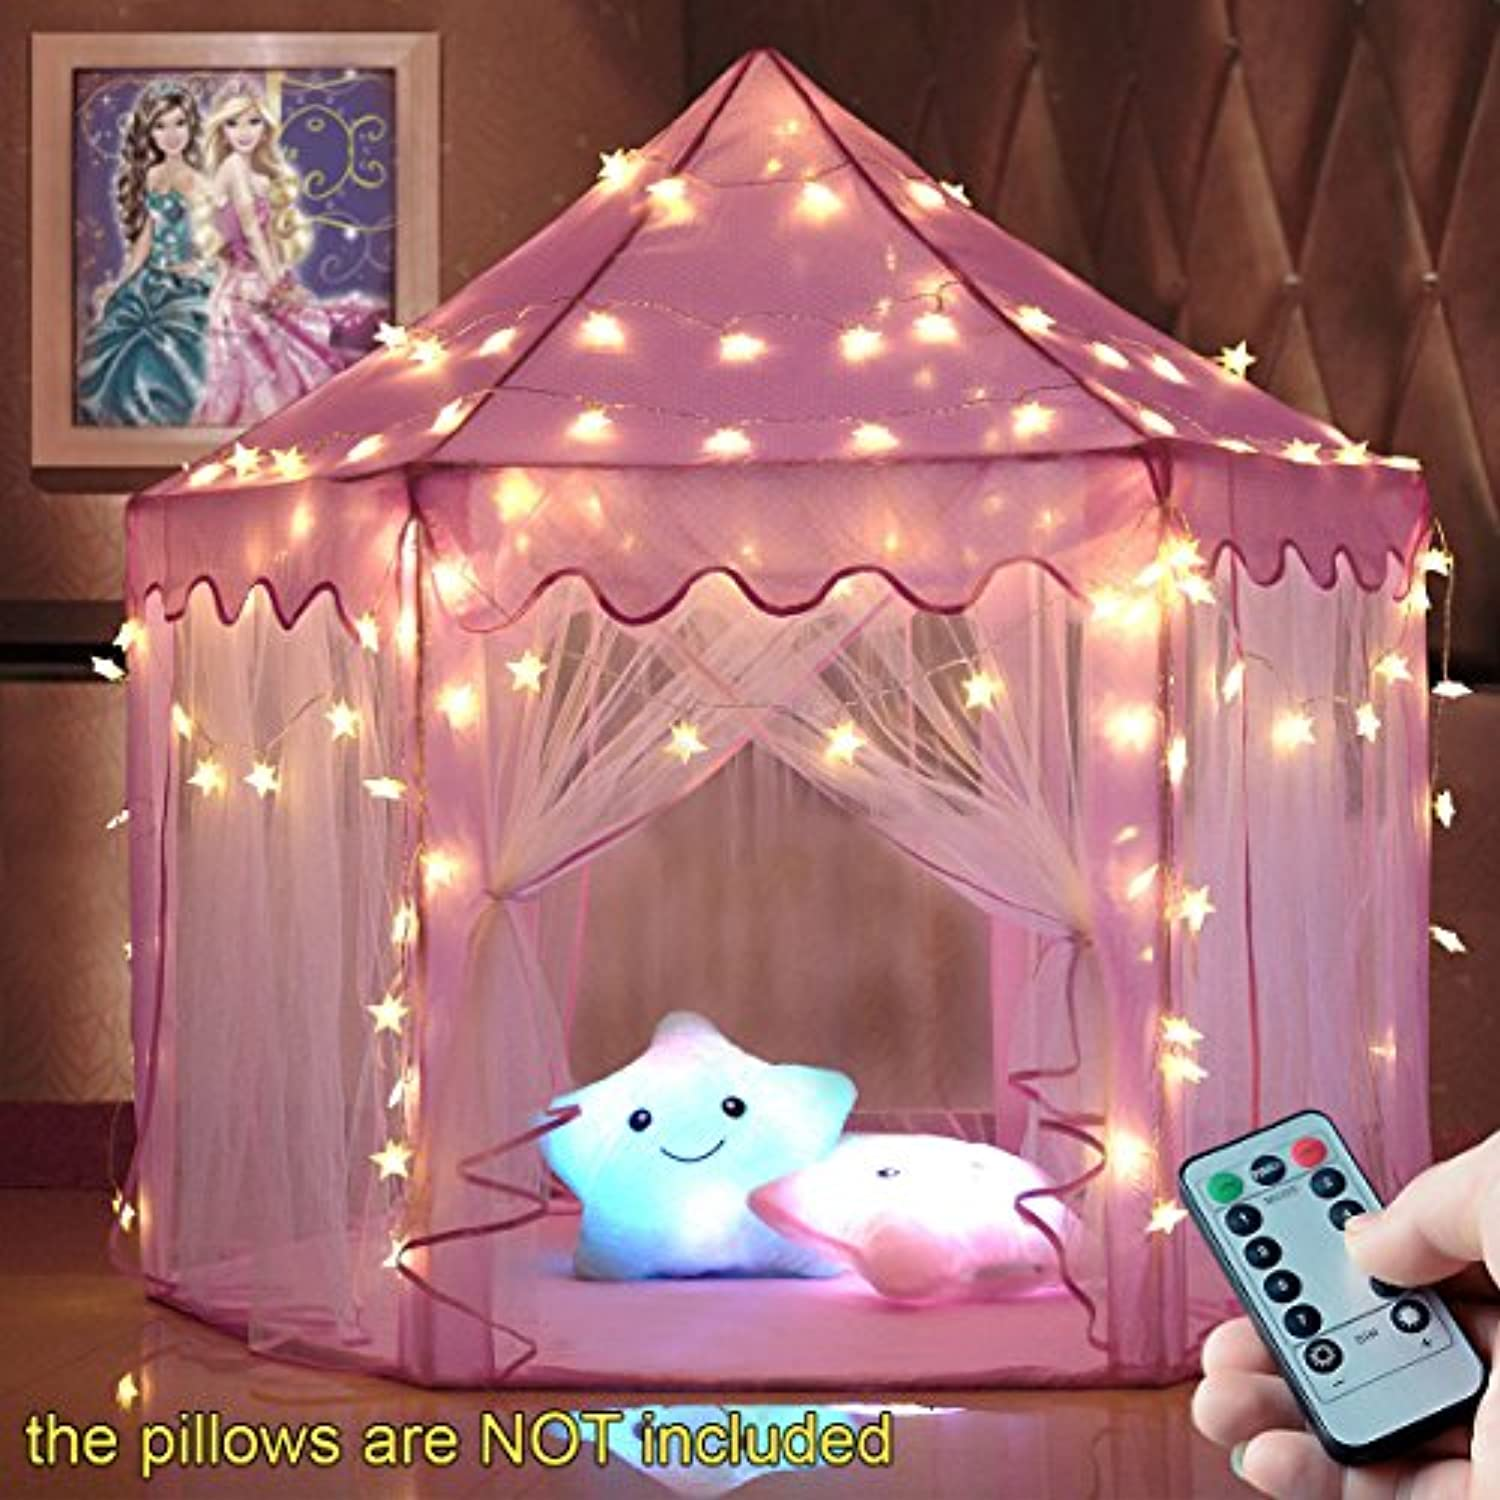 windpnn Kids Play Tent ,ピンクプリンセスCastle Play House , Large Light Up Playhouse W /リモートLED TwinkleスターLight、Top Toyギフトアイデアの男の子/女の子/幼児/赤ちゃん( 55「x54」